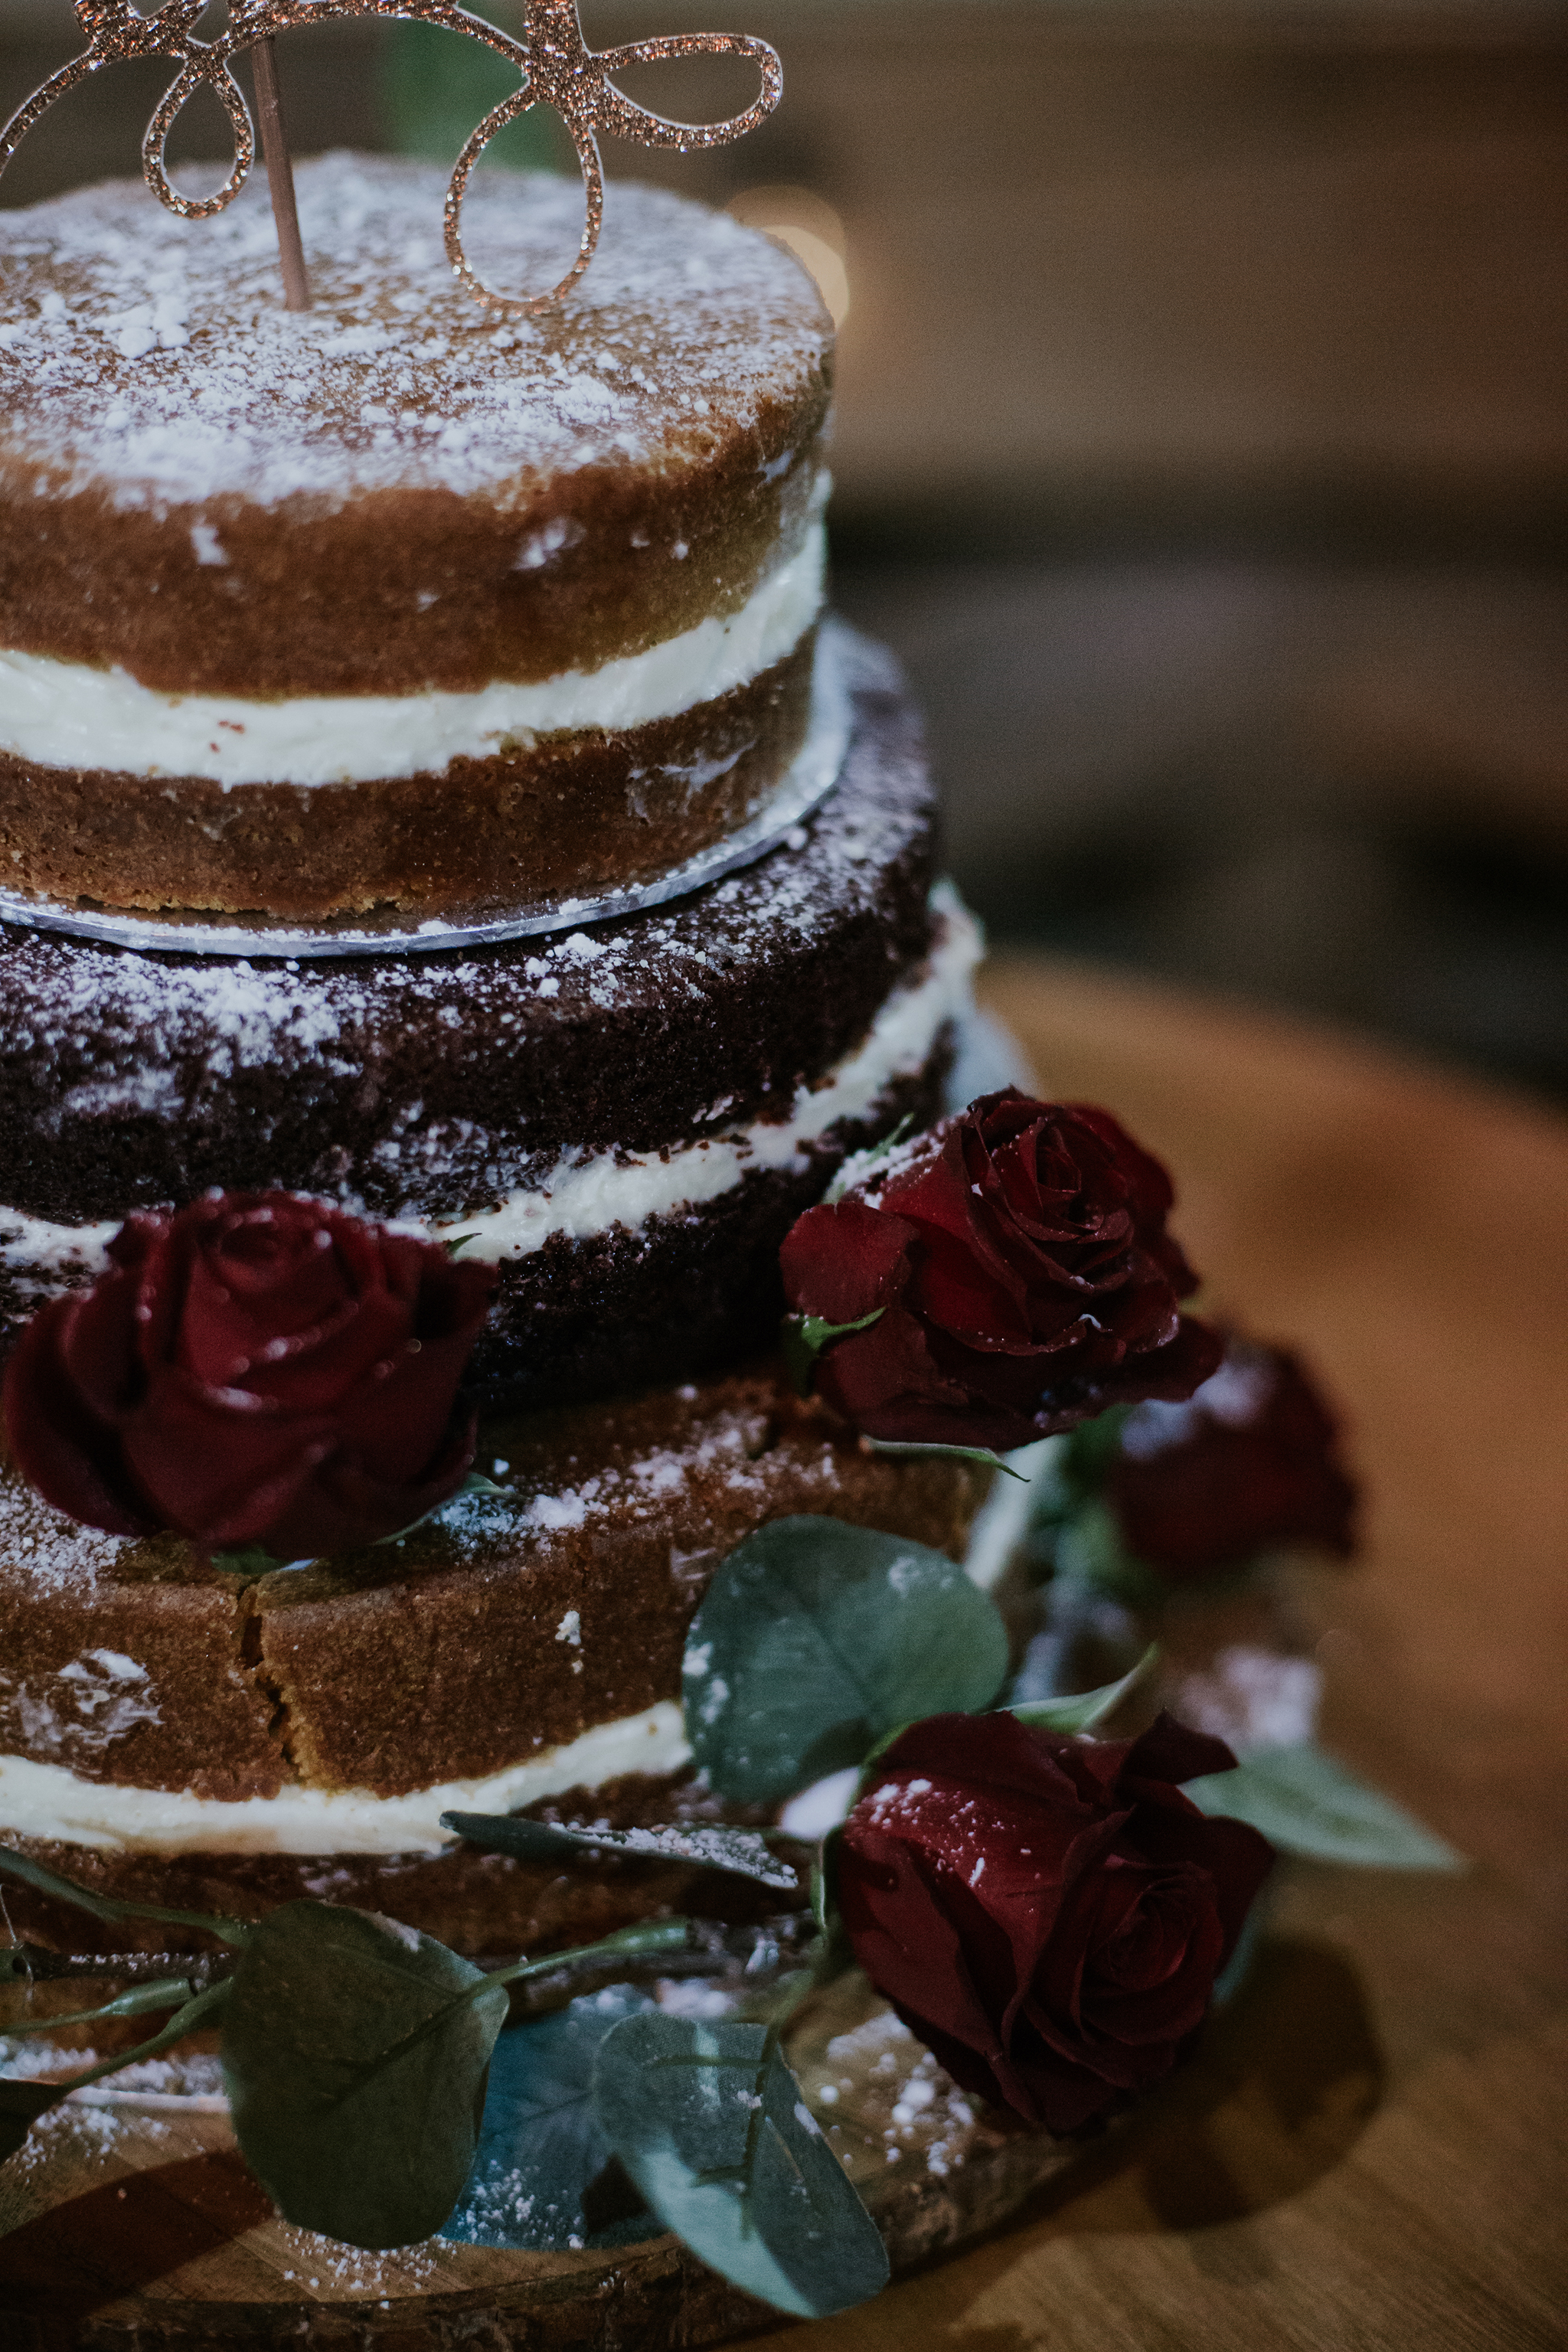 The stunning naked wedding cake with 3 tiers and roses as a decoration